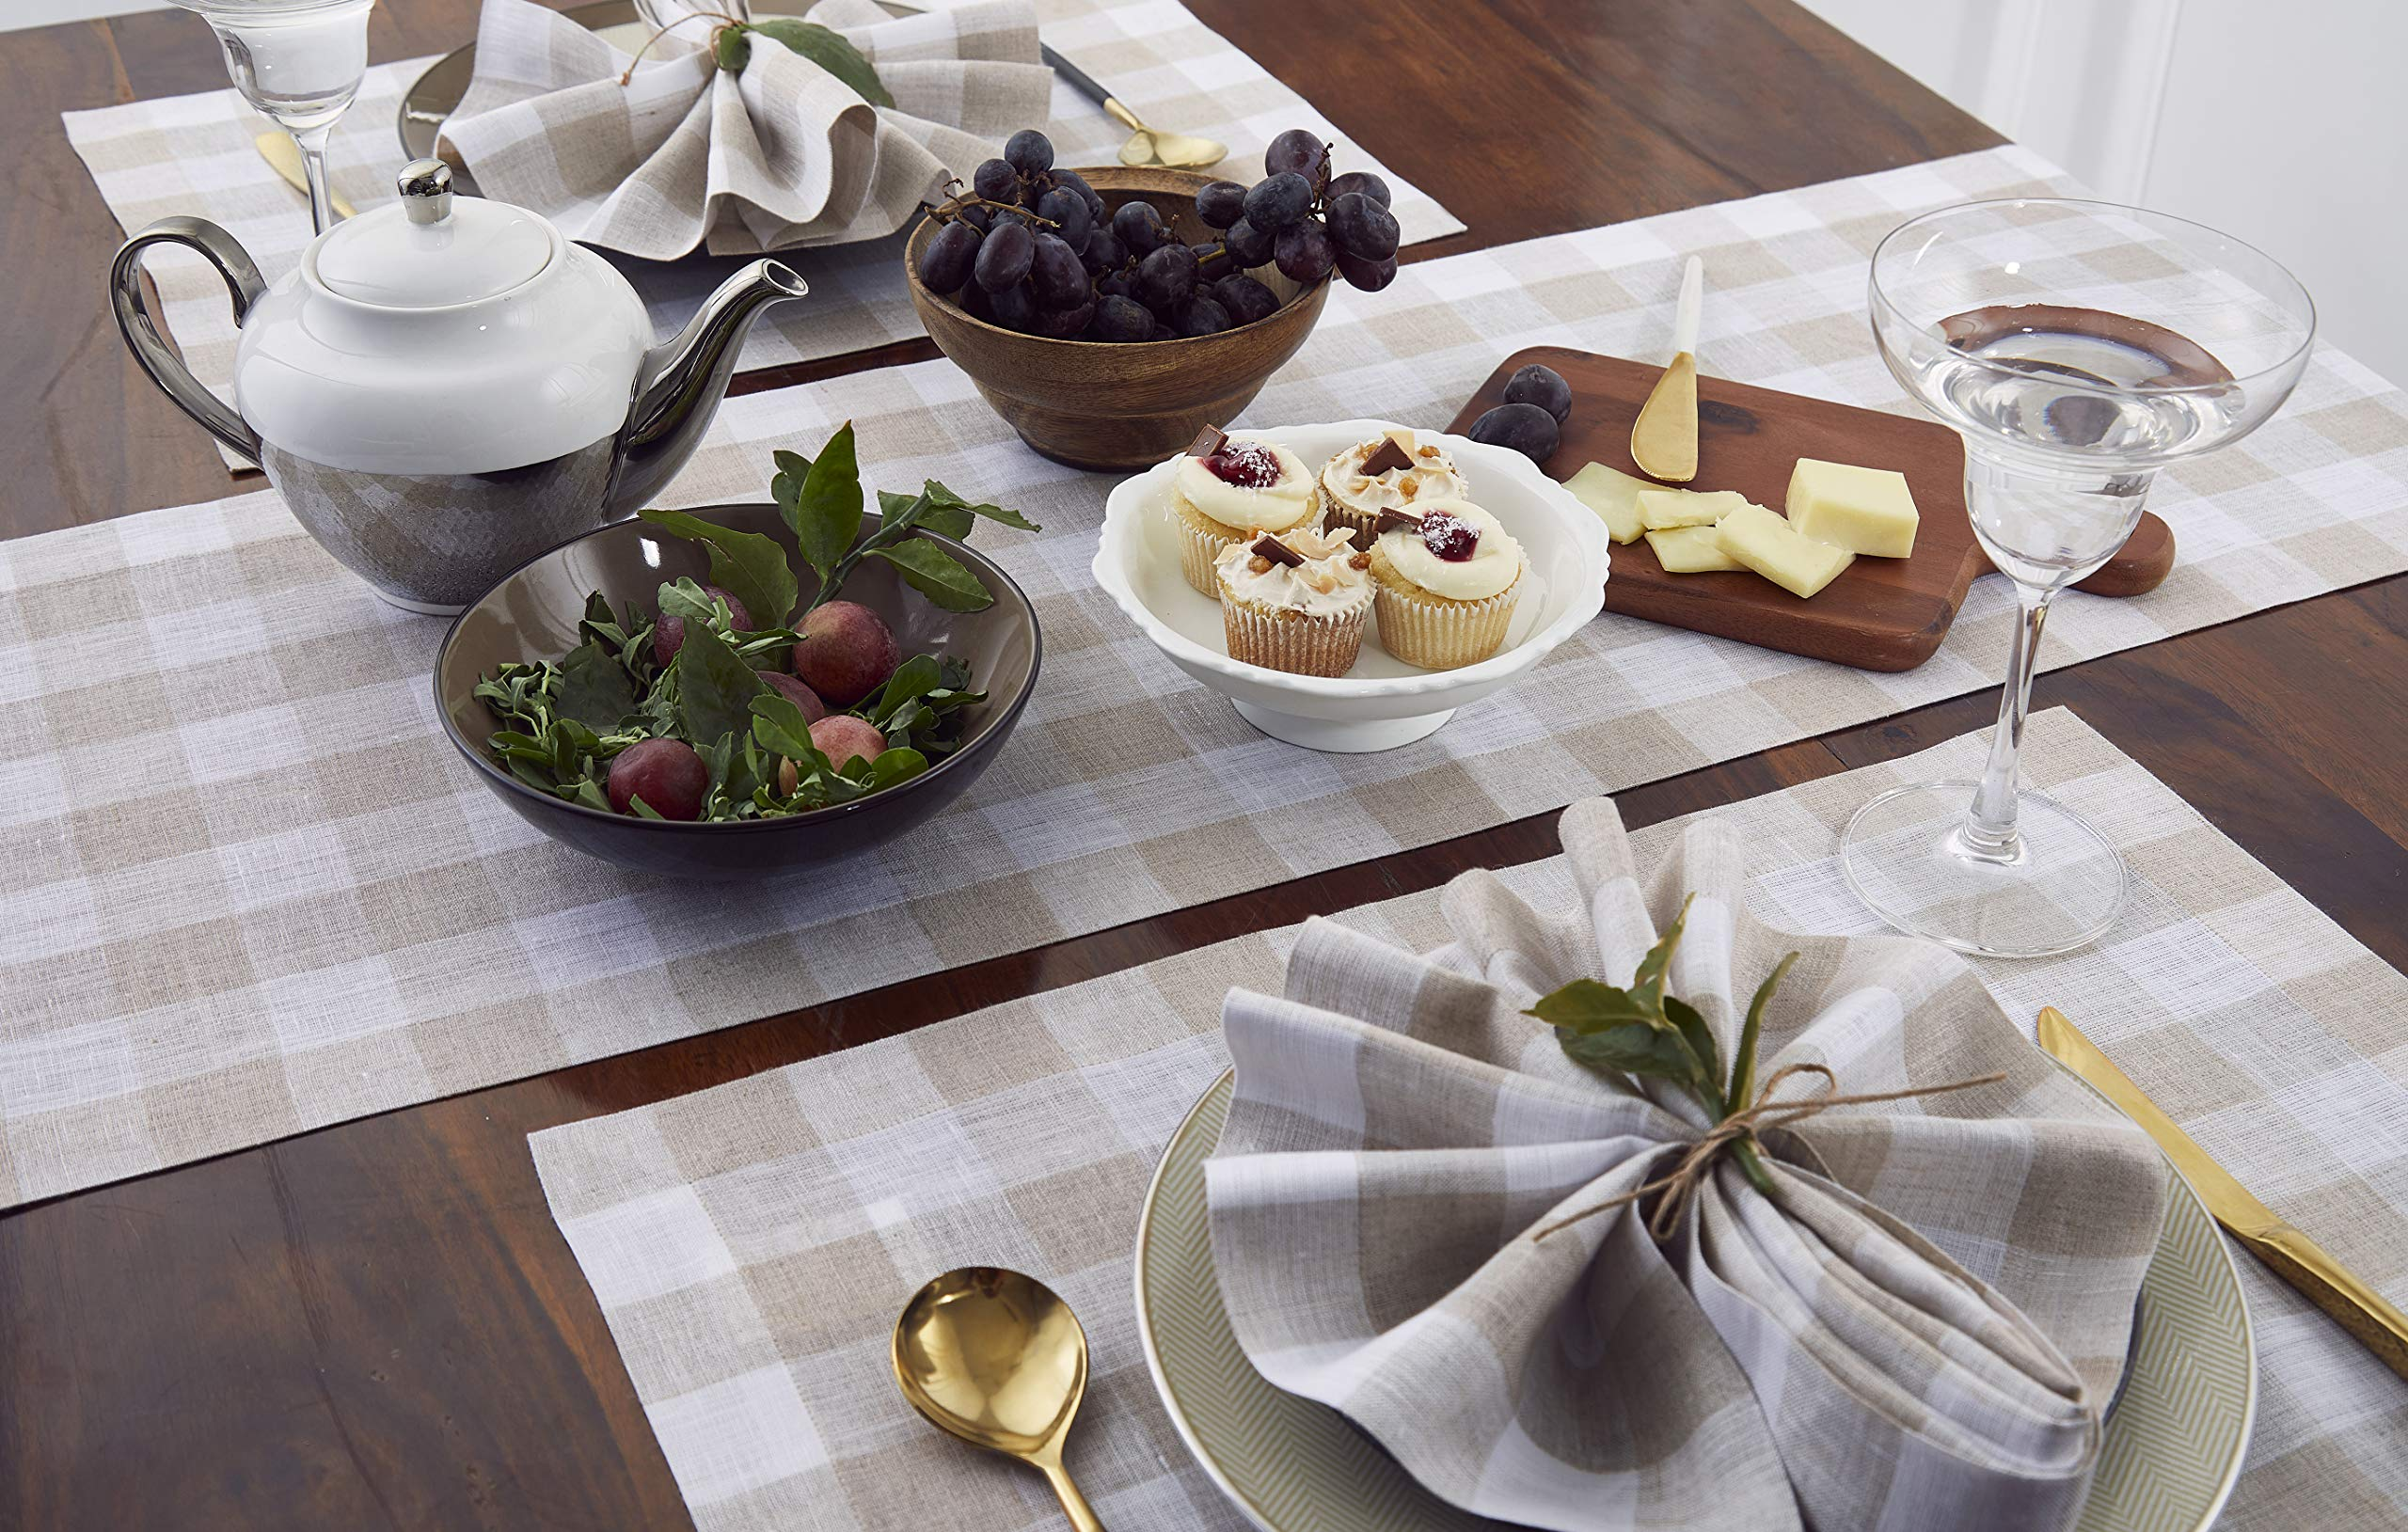 Solino Home 100% Pure Linen Checks Table Runner - Natural & White Check Table Runner - 14 x 72 Inch Runner for Dinner, Indoor and Outdoor Use by Solino Home (Image #3)